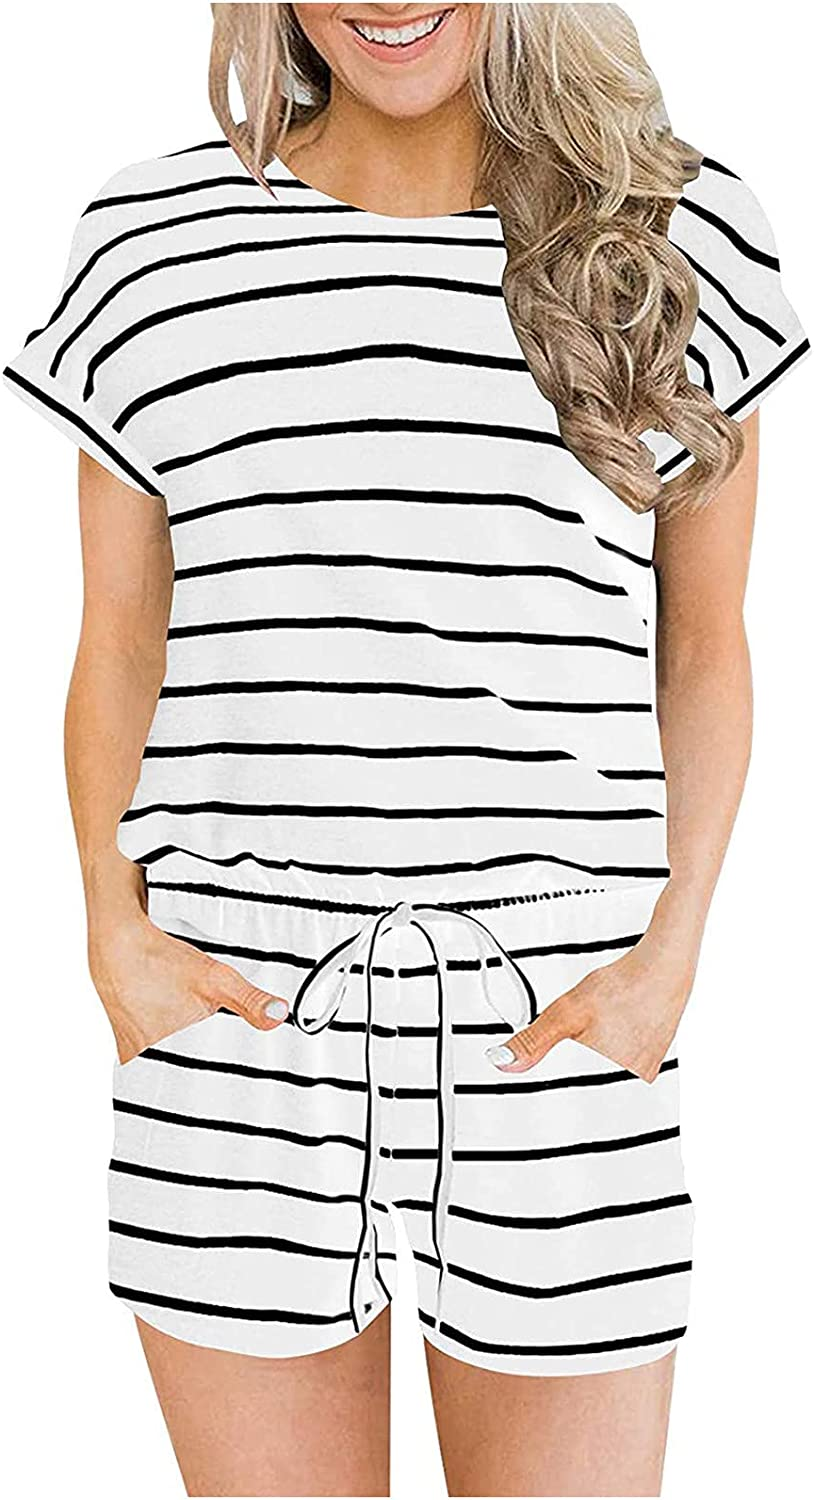 Leirke Women's Summer Crewneck Casual Loose Short Sleeve Jumpsuit Rompers One Piece Pajamas Loungewear with Pockets